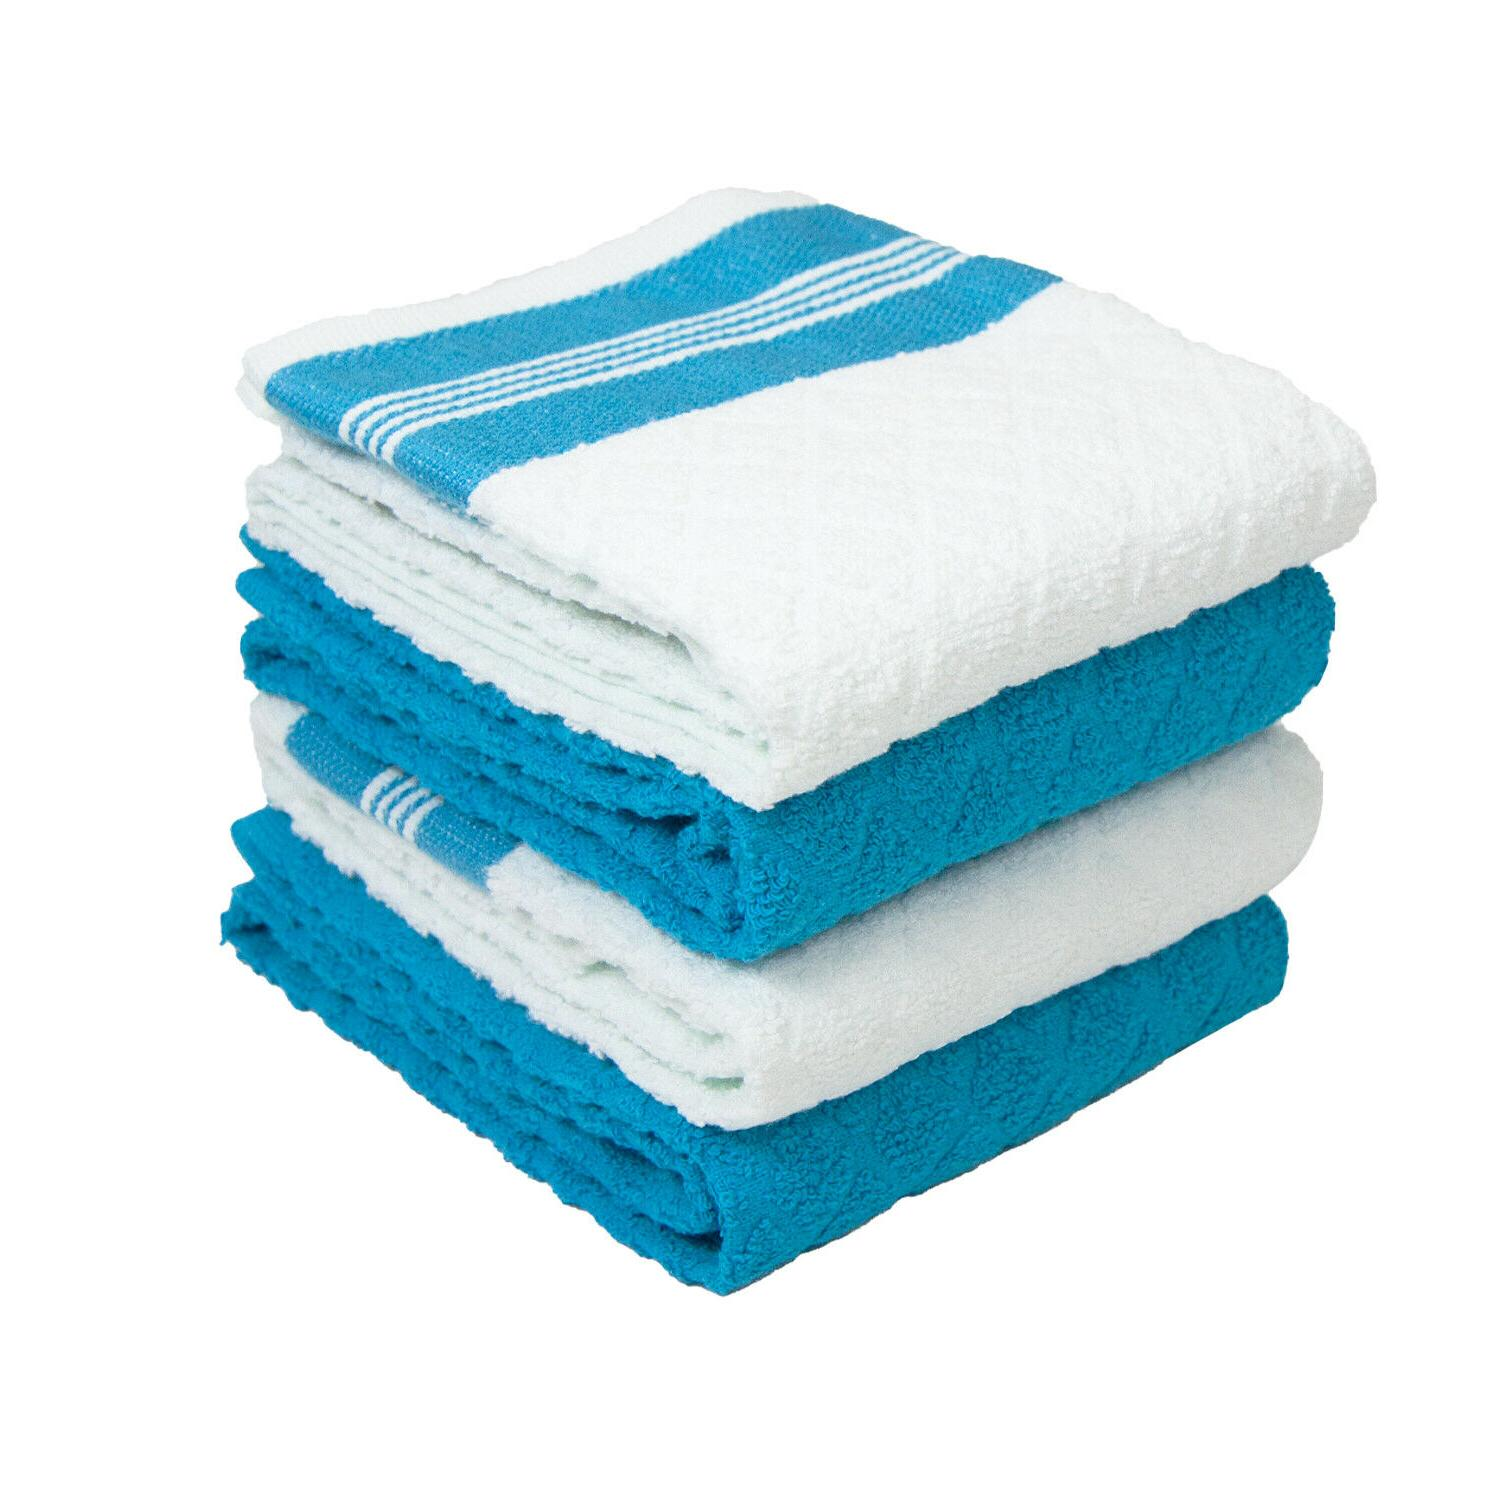 4 Pack of Towels - - Soft